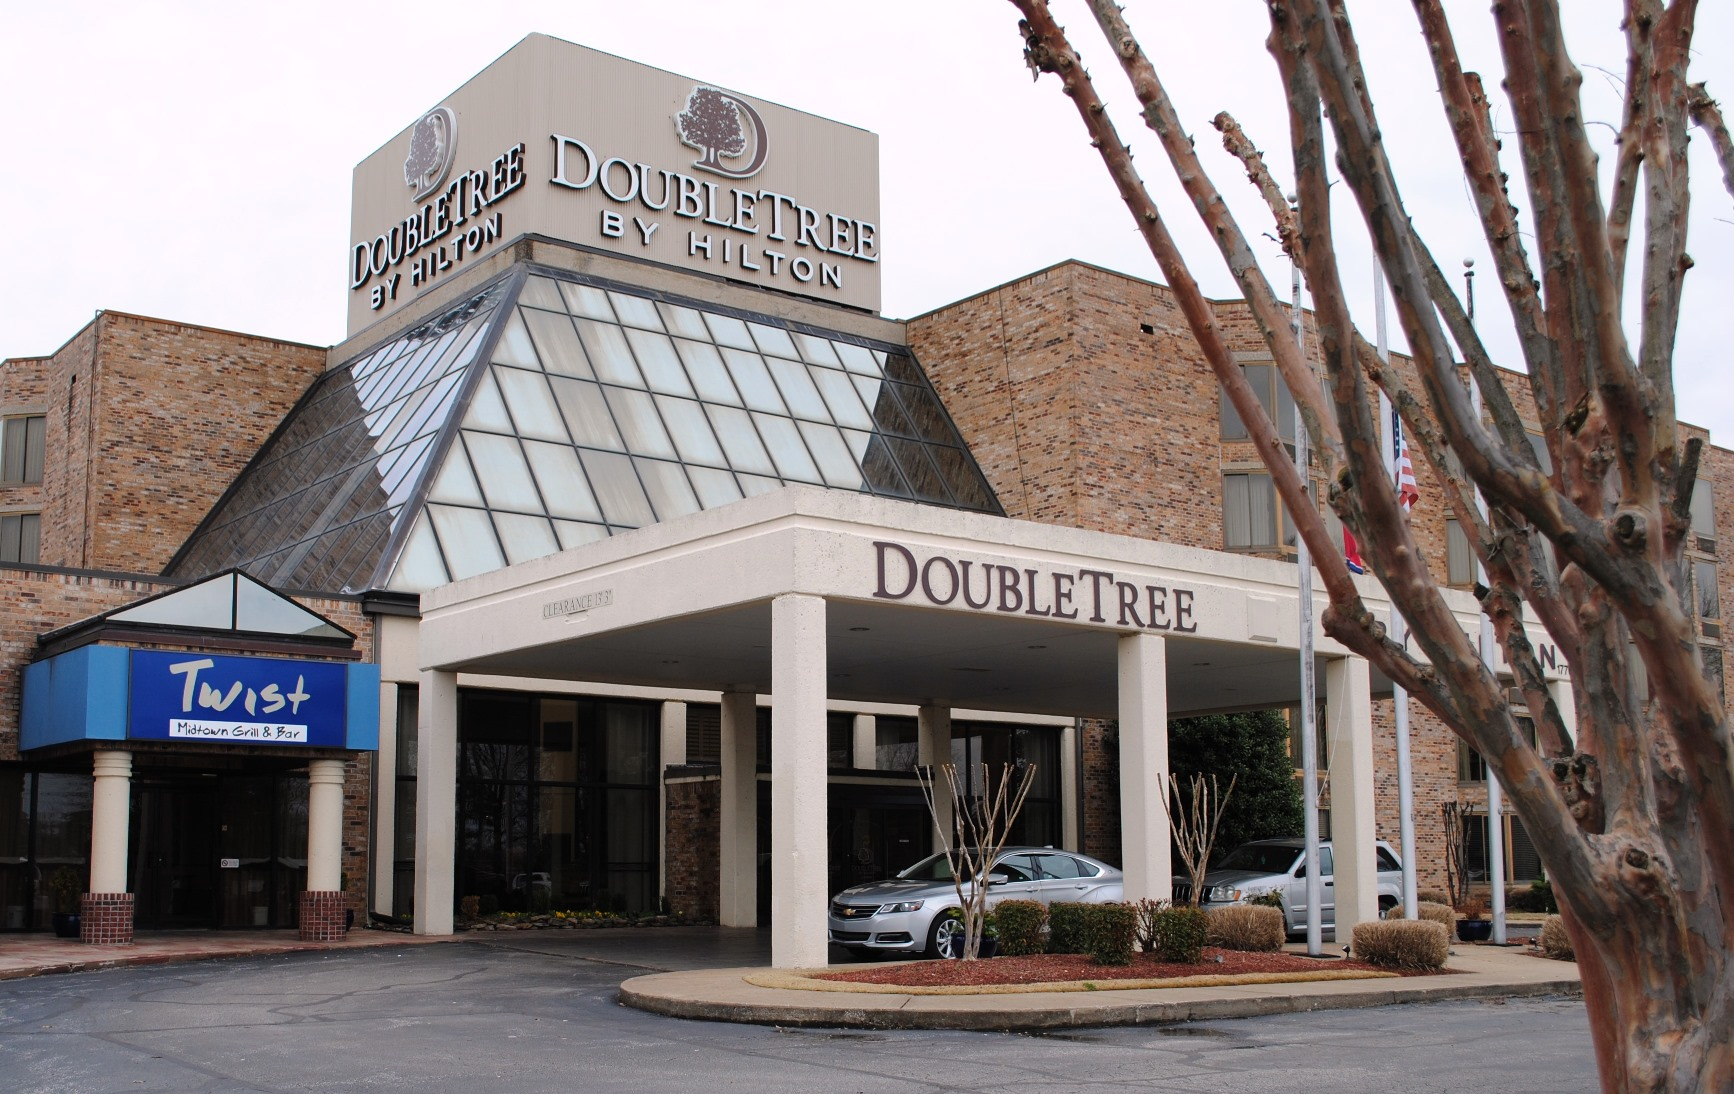 DoubleTree Hotel - Jackson, Tennessee